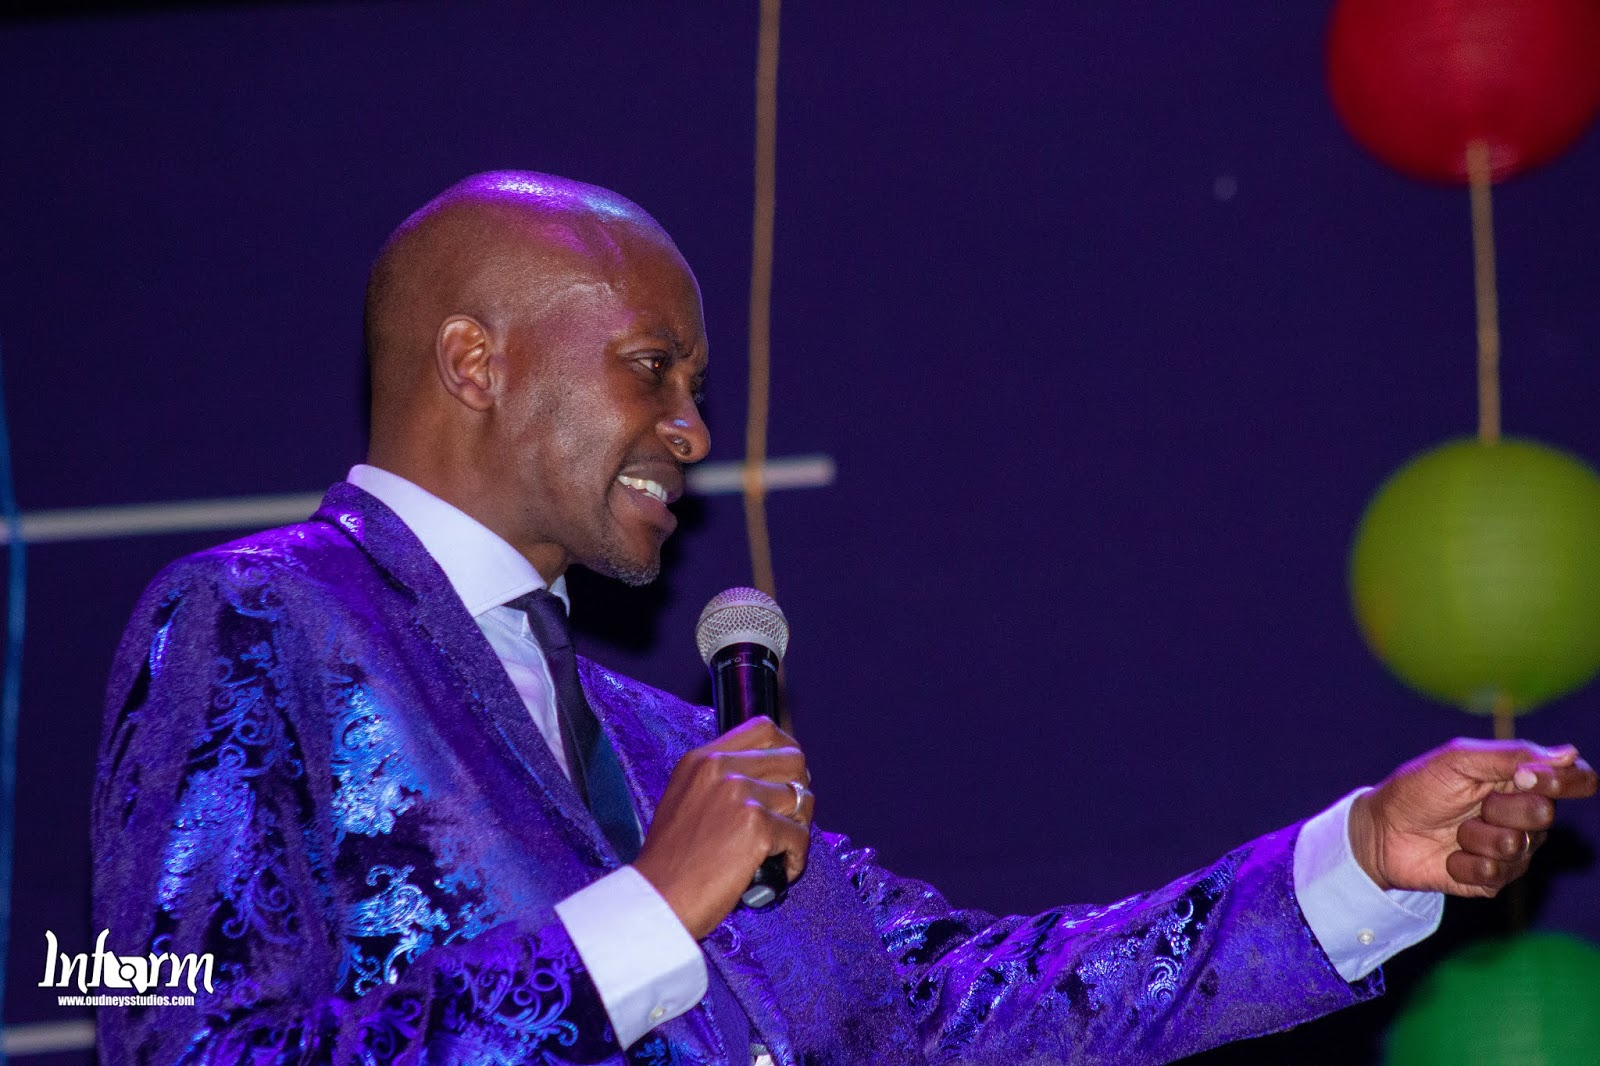 10 Things I Have Learnt From The Life Of My Spiritual Father Apostle P. Sibiya